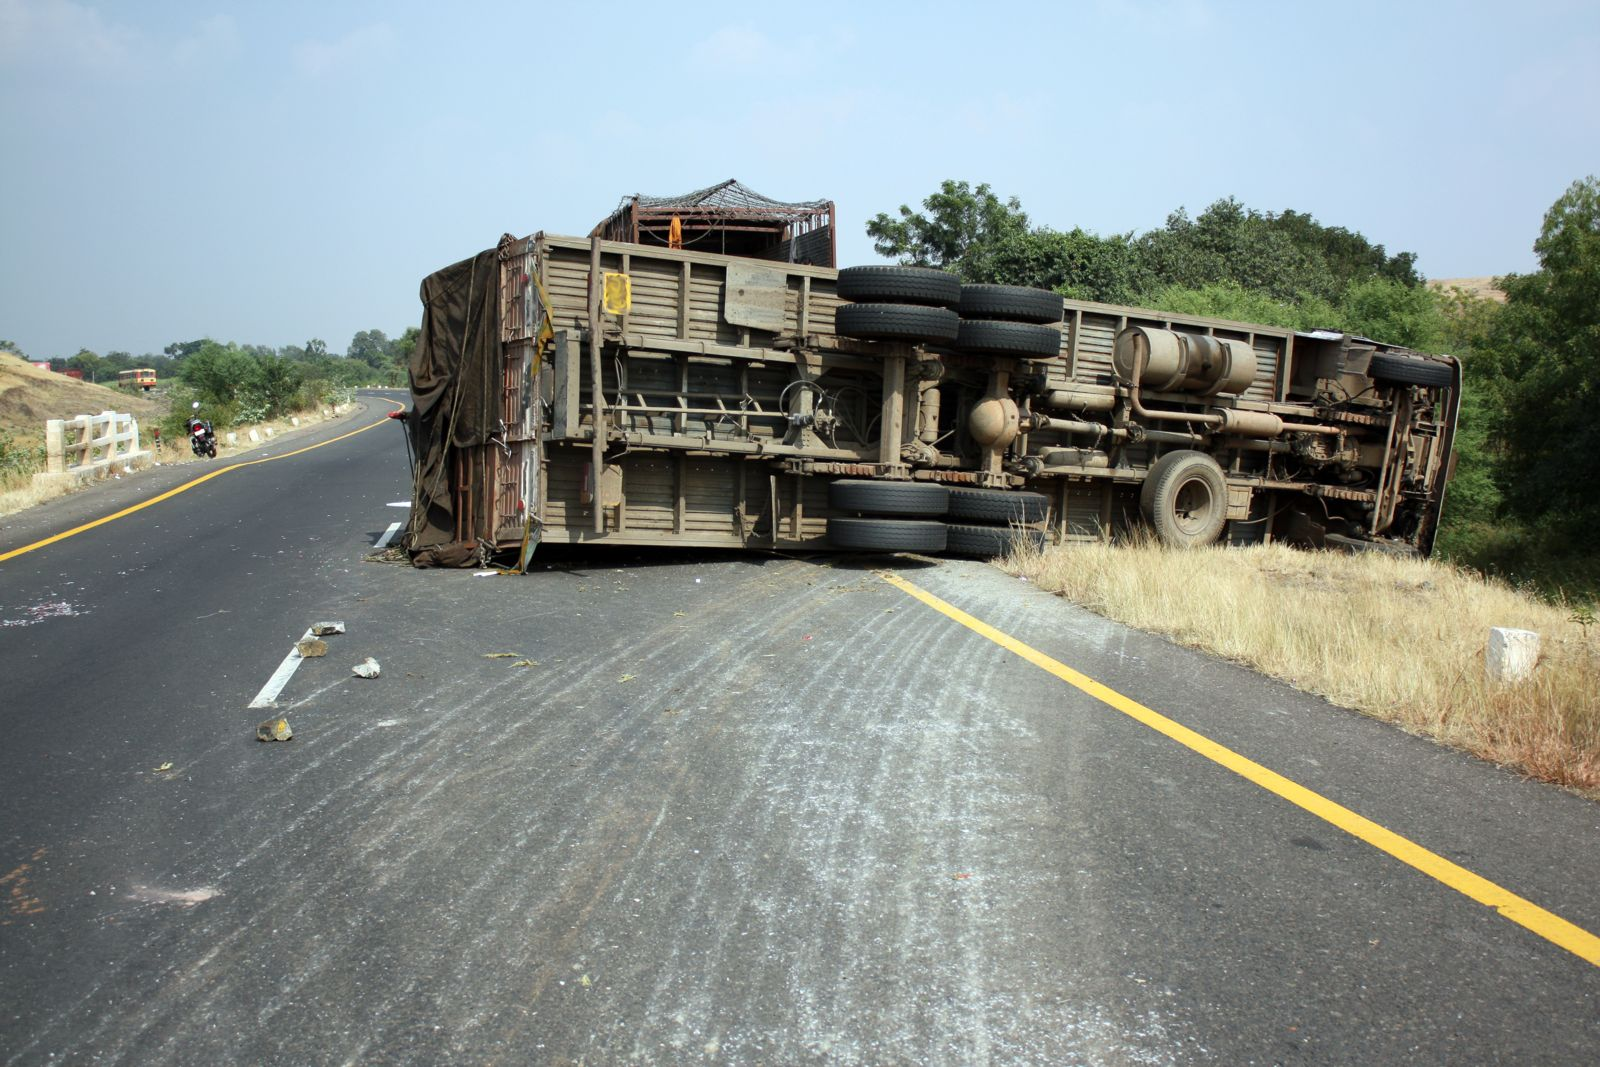 Truck Overturned on Highway